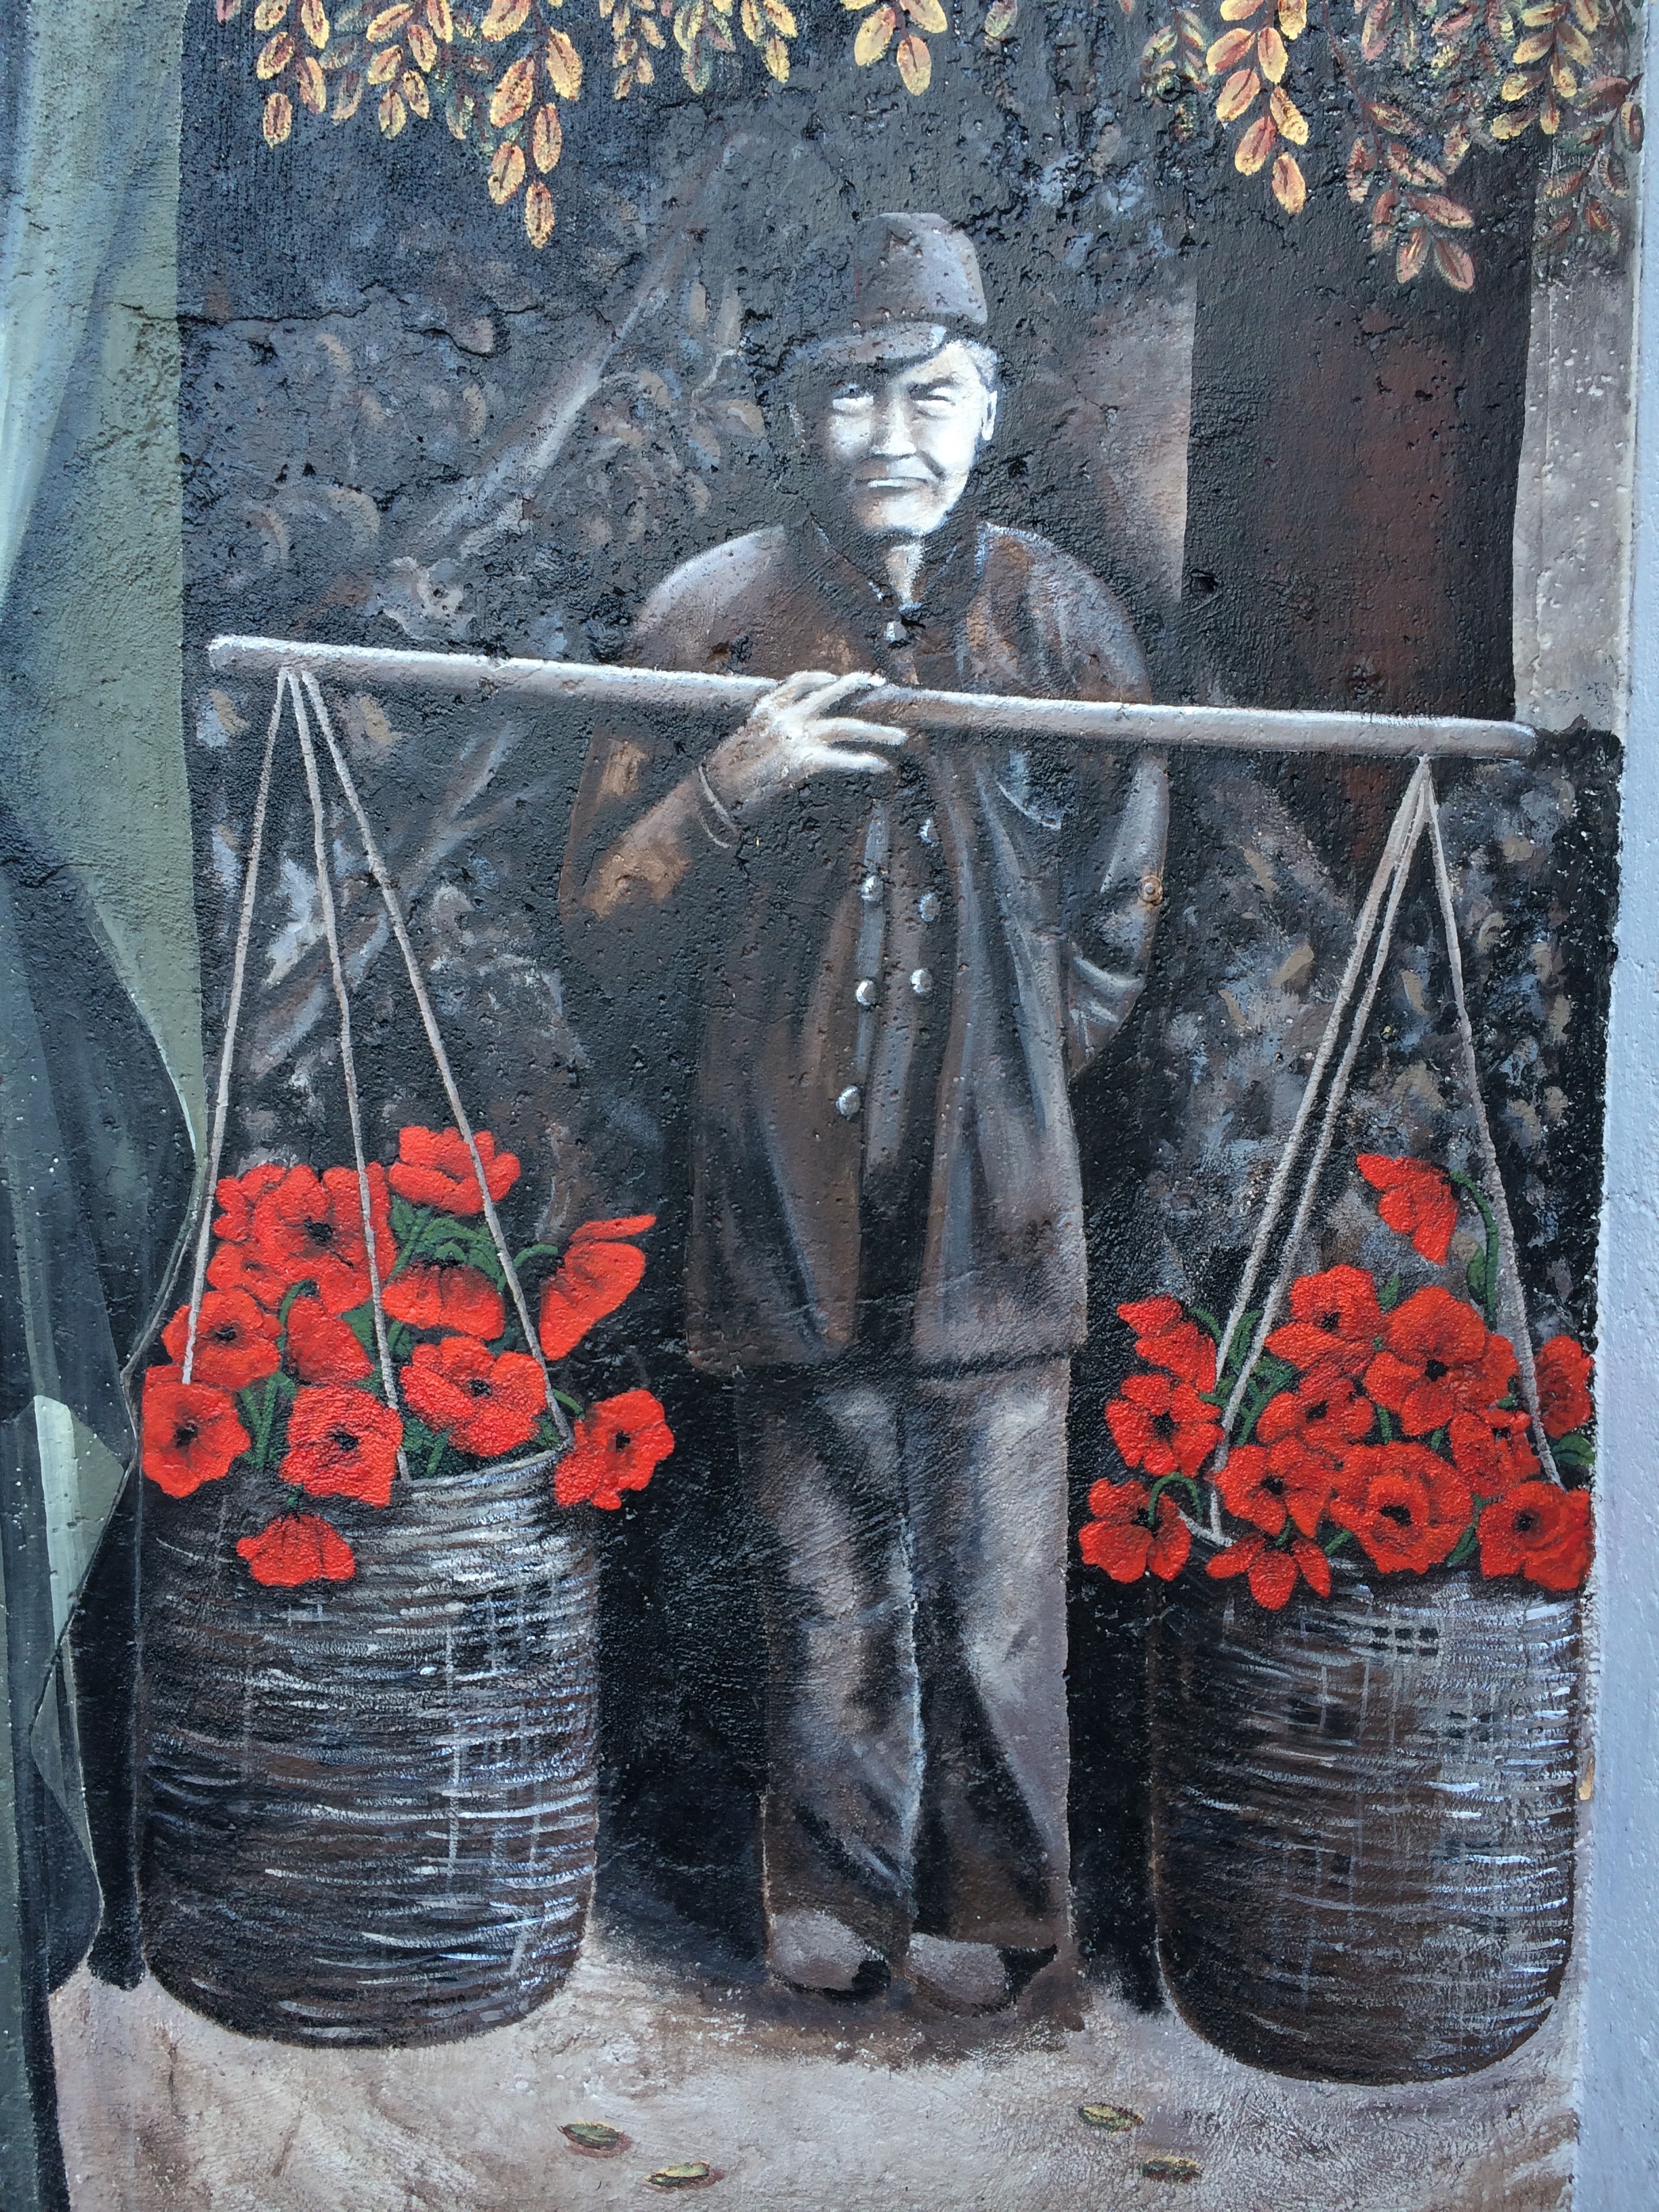 Chinese Man (Stephane Cellier and Molley Malone), baskets (Molley) and poppies (A. Perry).